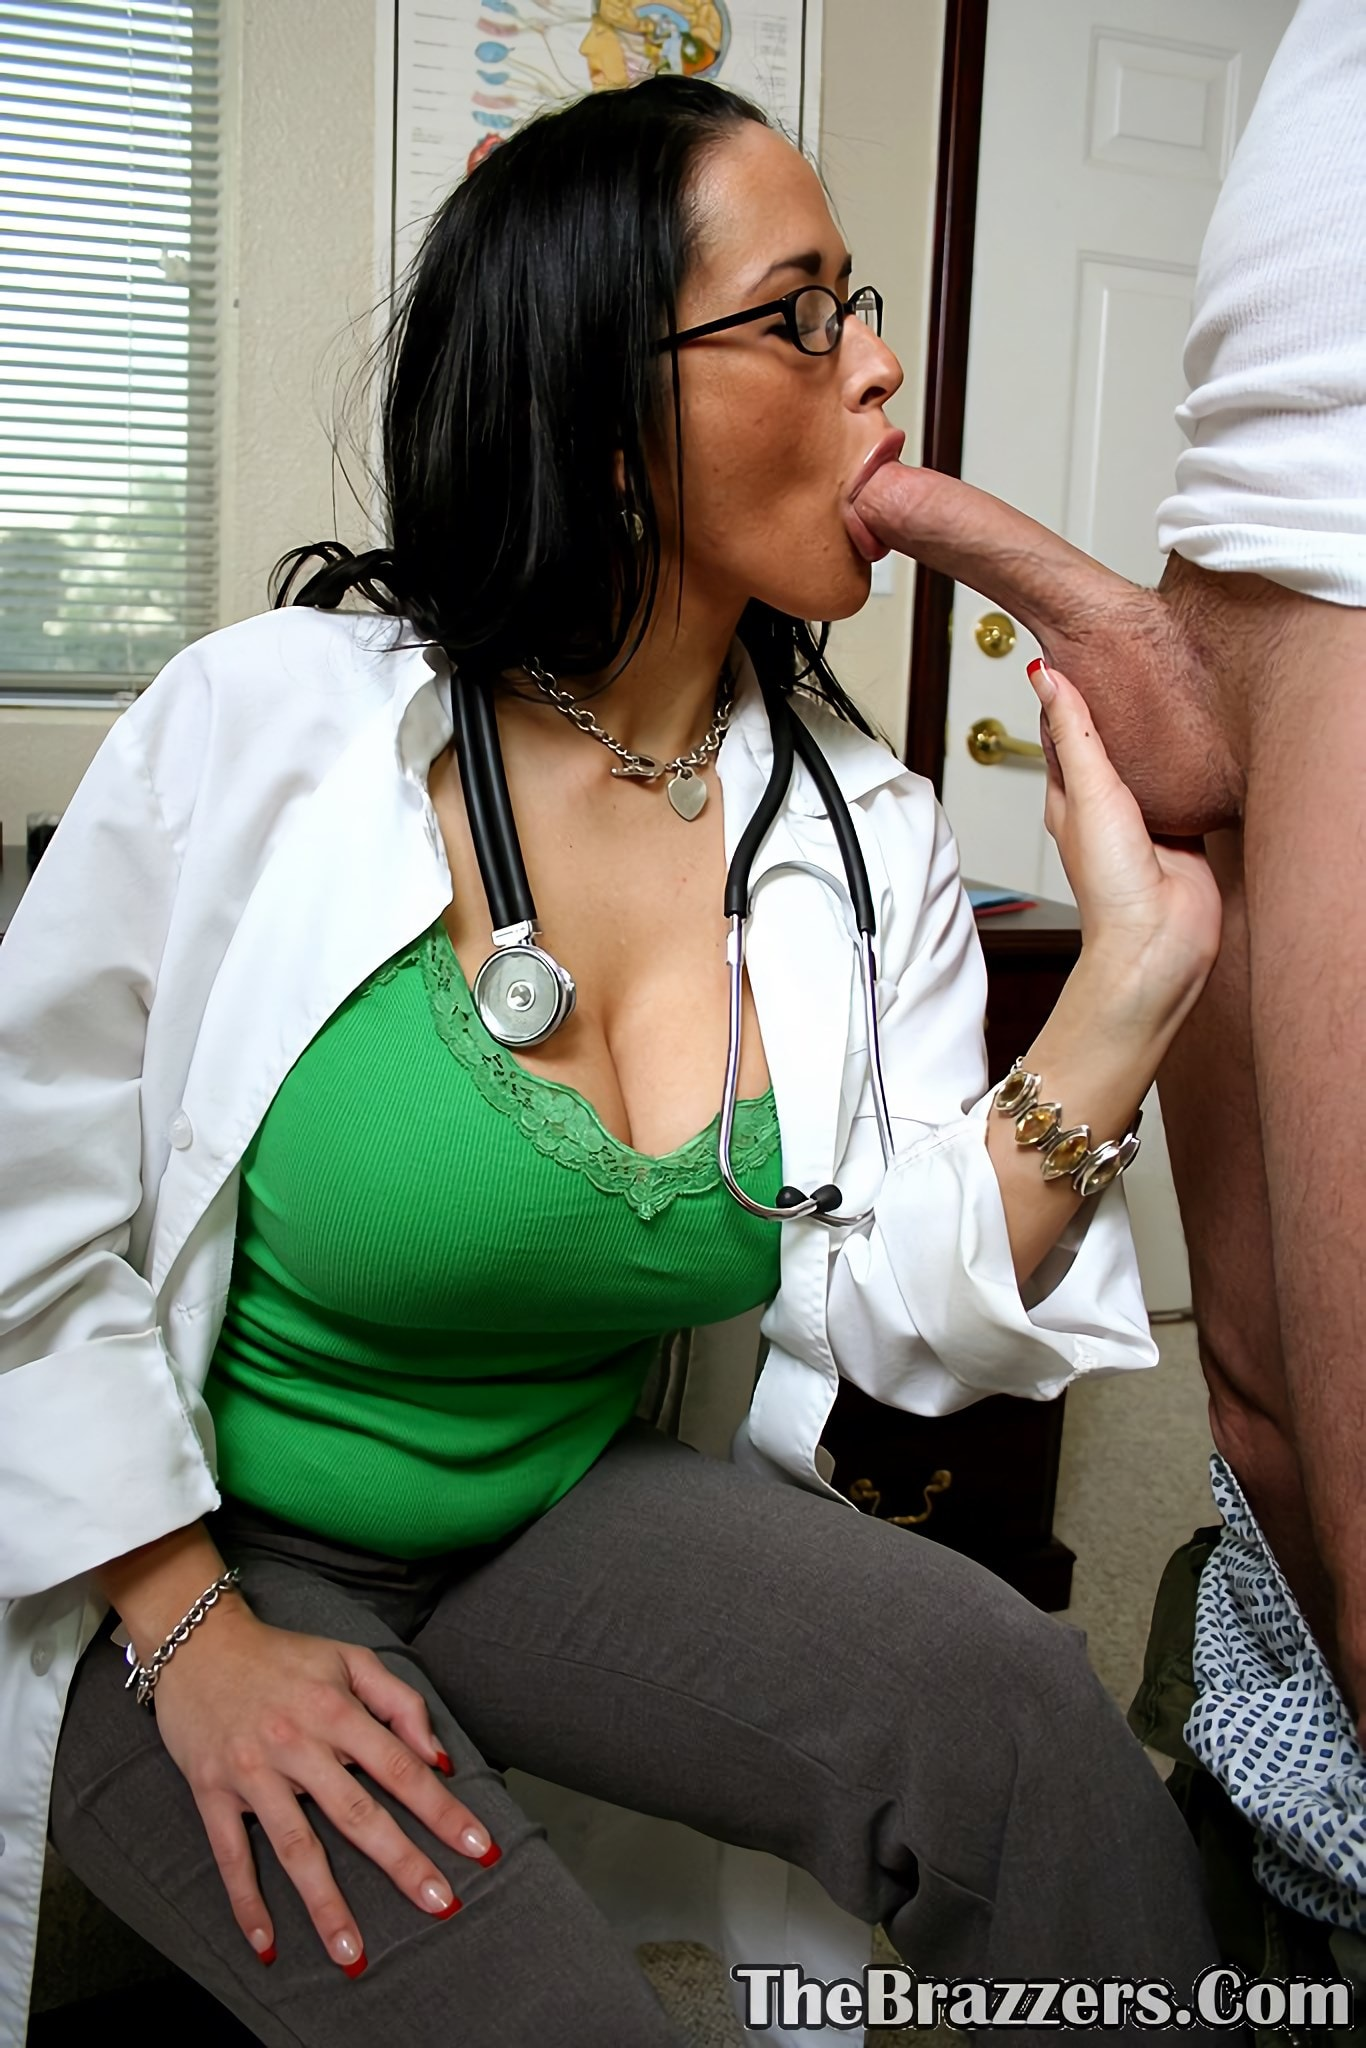 Doctors office blowjob